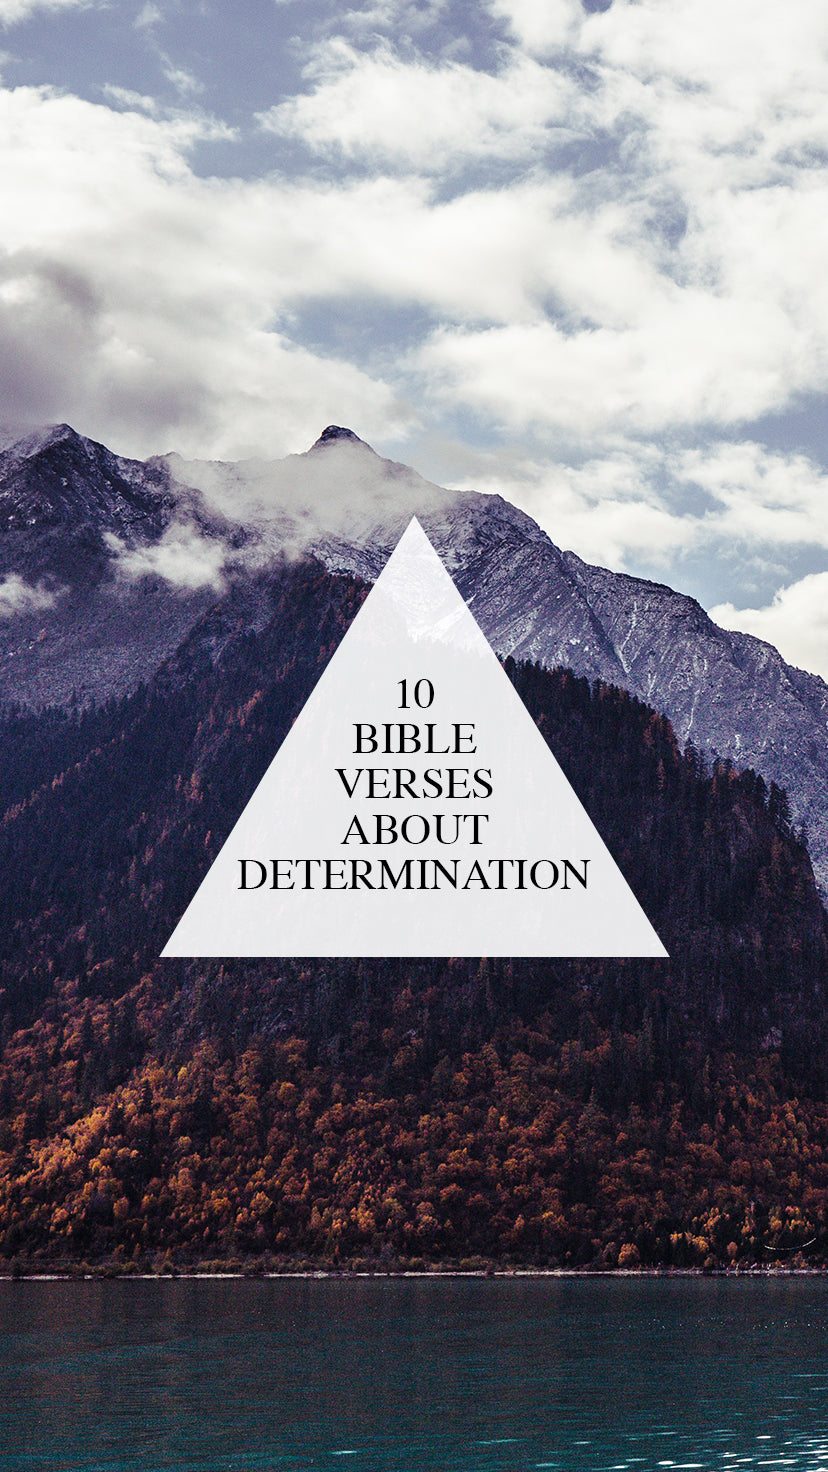 Bible Quotes For Strength 10 Bible Verses About Determination  Strength  Walk In Love.